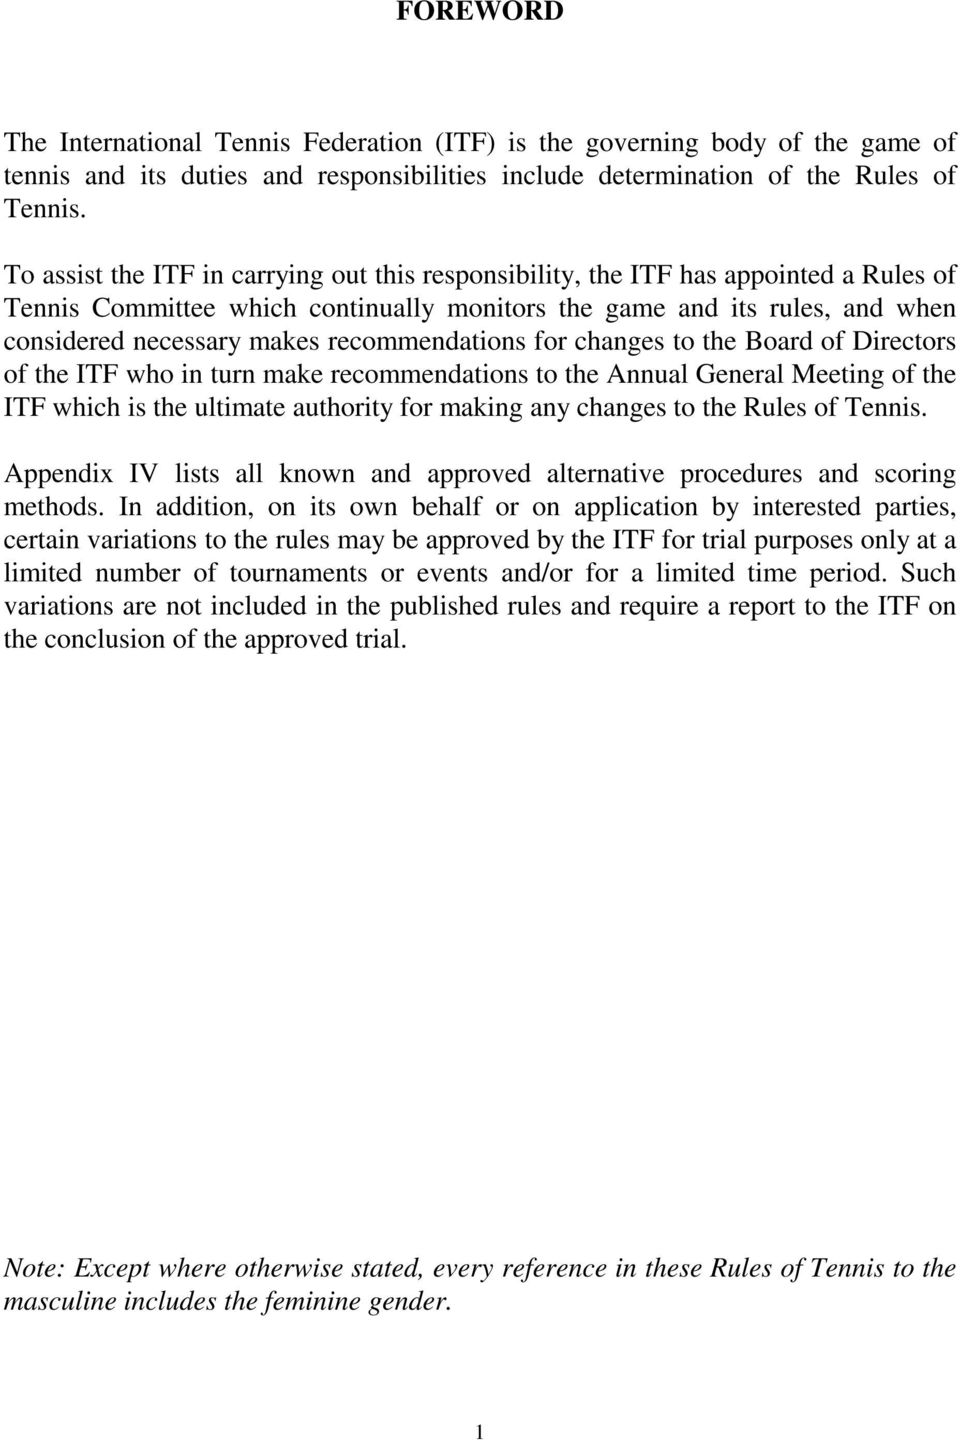 recommendations for changes to the Board of Directors of the ITF who in turn make recommendations to the Annual General Meeting of the ITF which is the ultimate authority for making any changes to